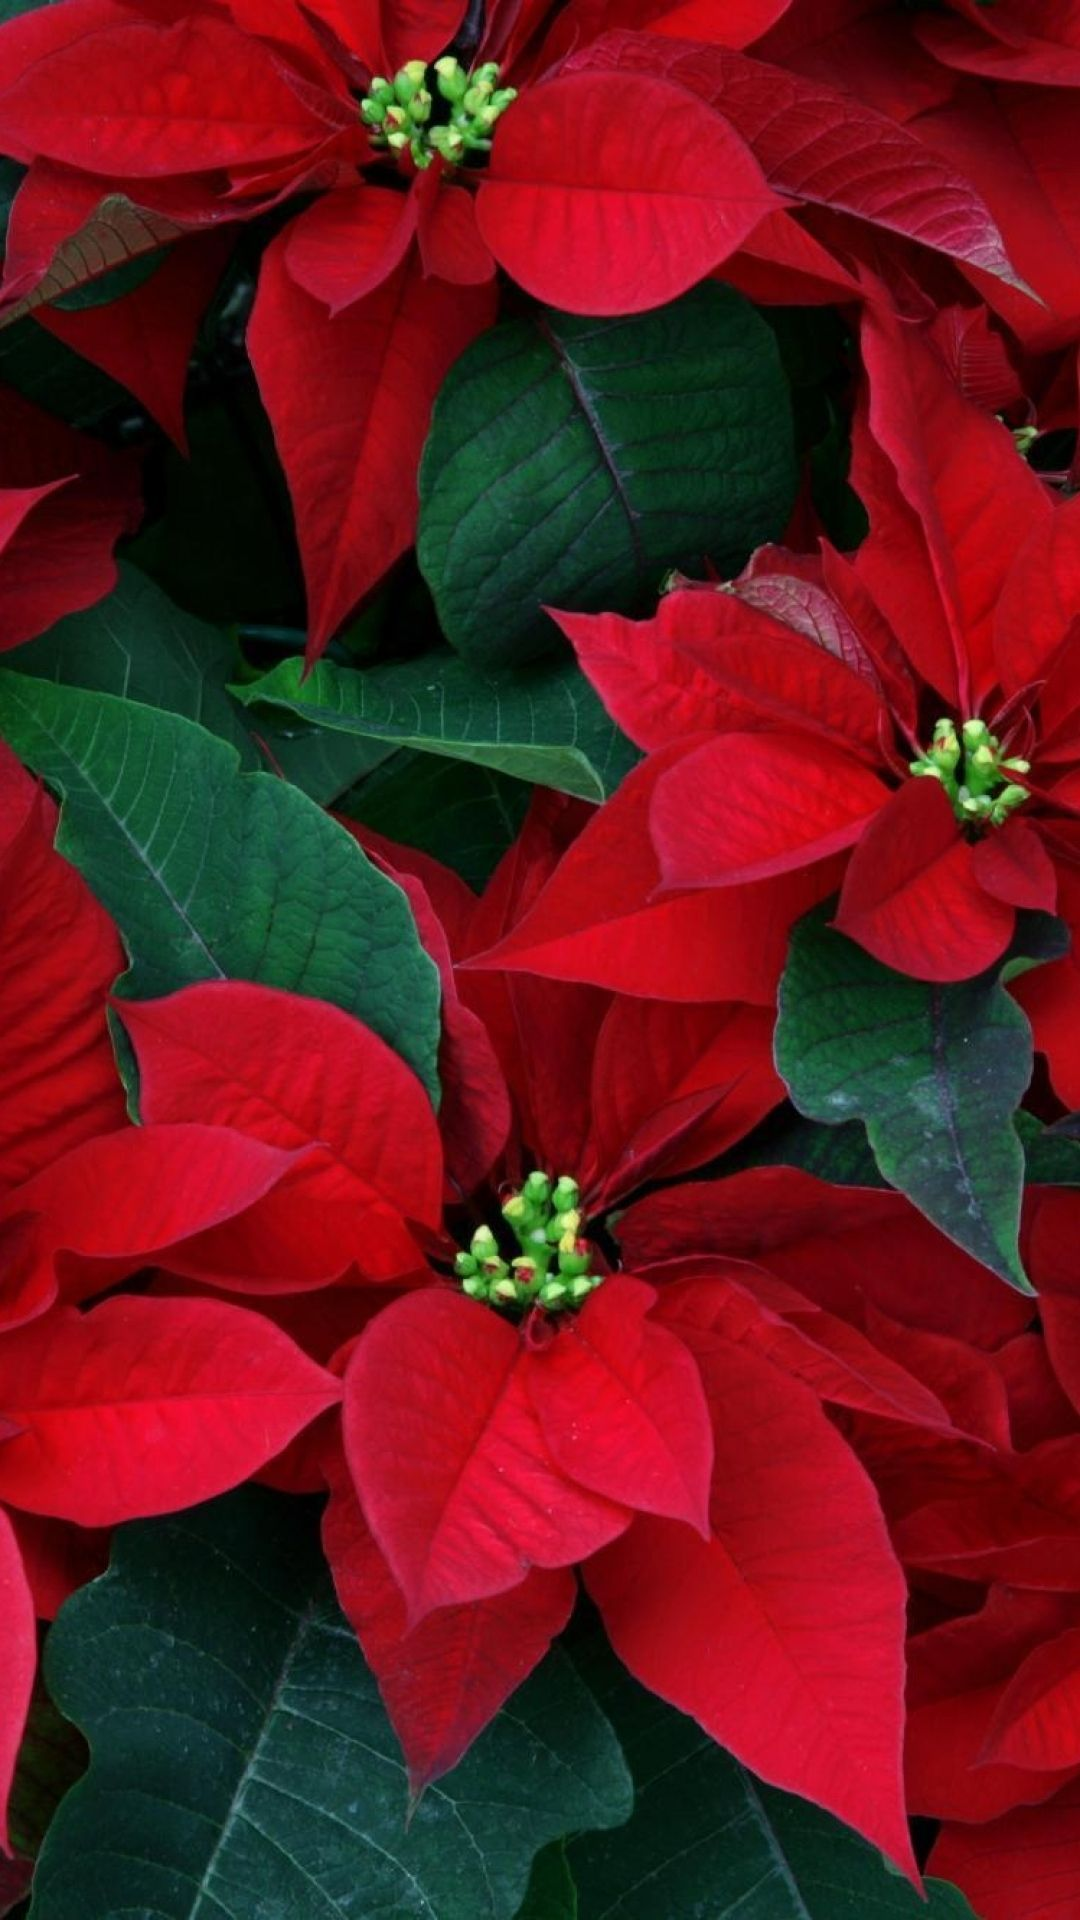 1080x1920 Wallpaper Poinsettia Flowers Herbs Leaves Red Close Up Fleurs Rouges Lilas Fleur Fleur De Poinsettia